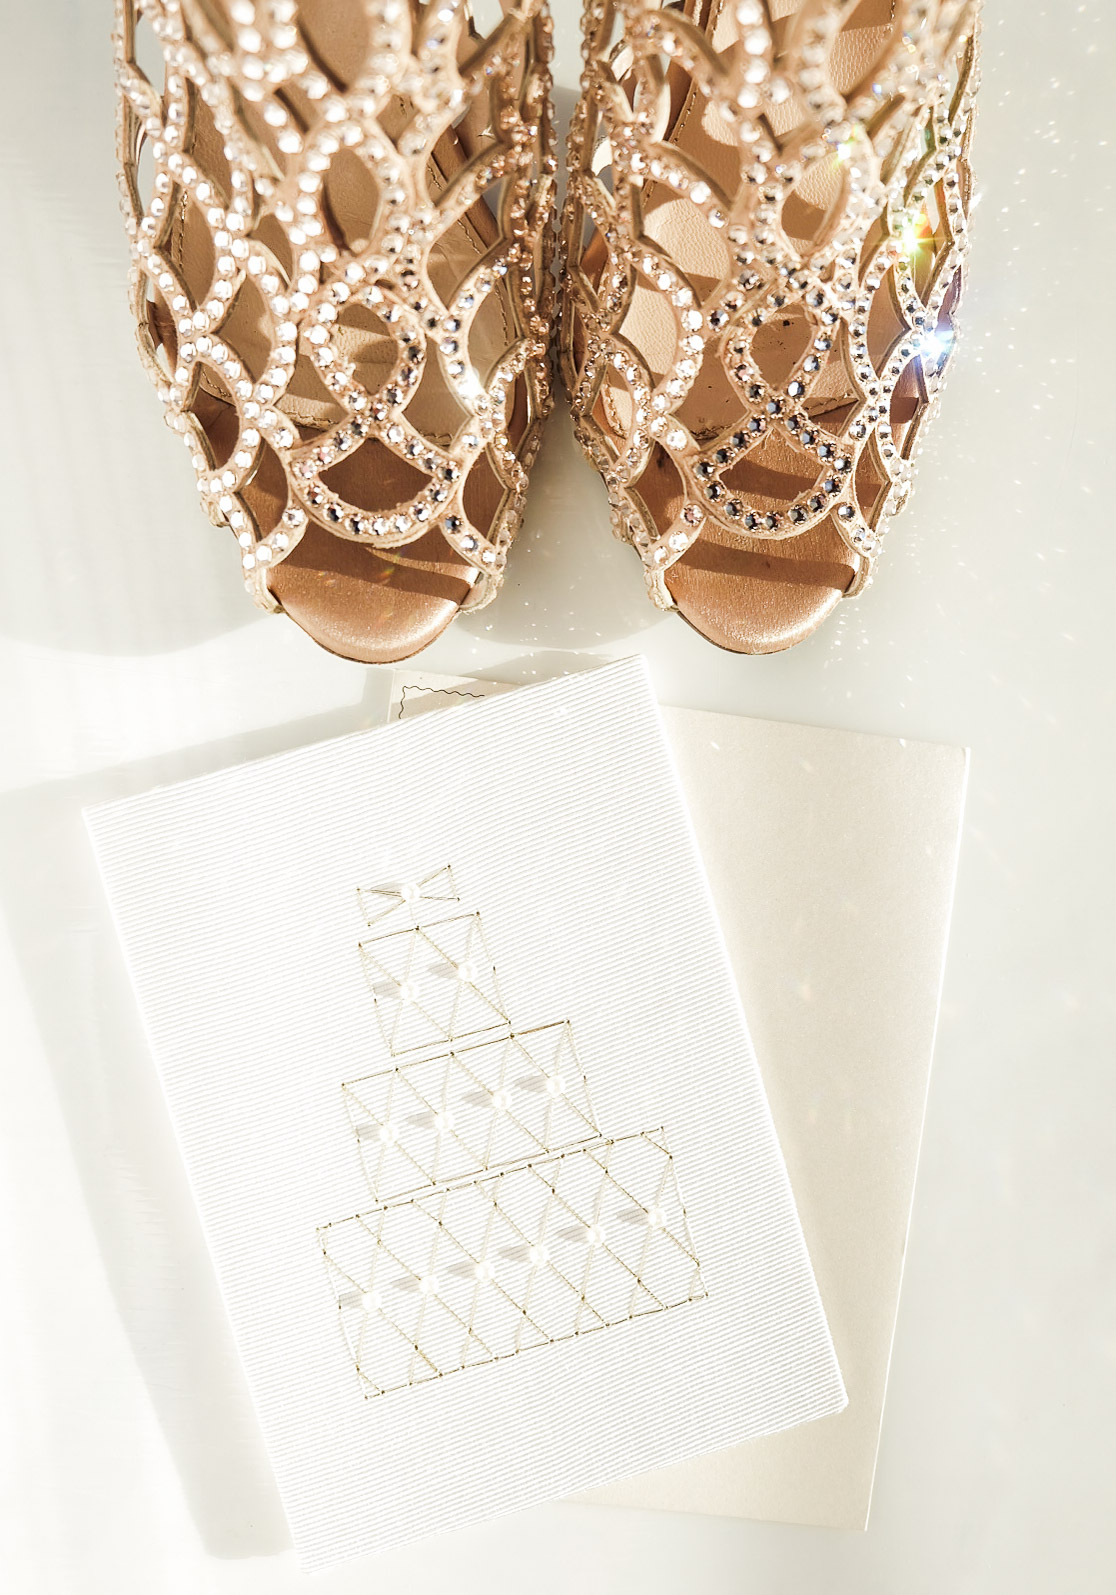 The best stationery for any wedding on www.me-and-mrjones.com!